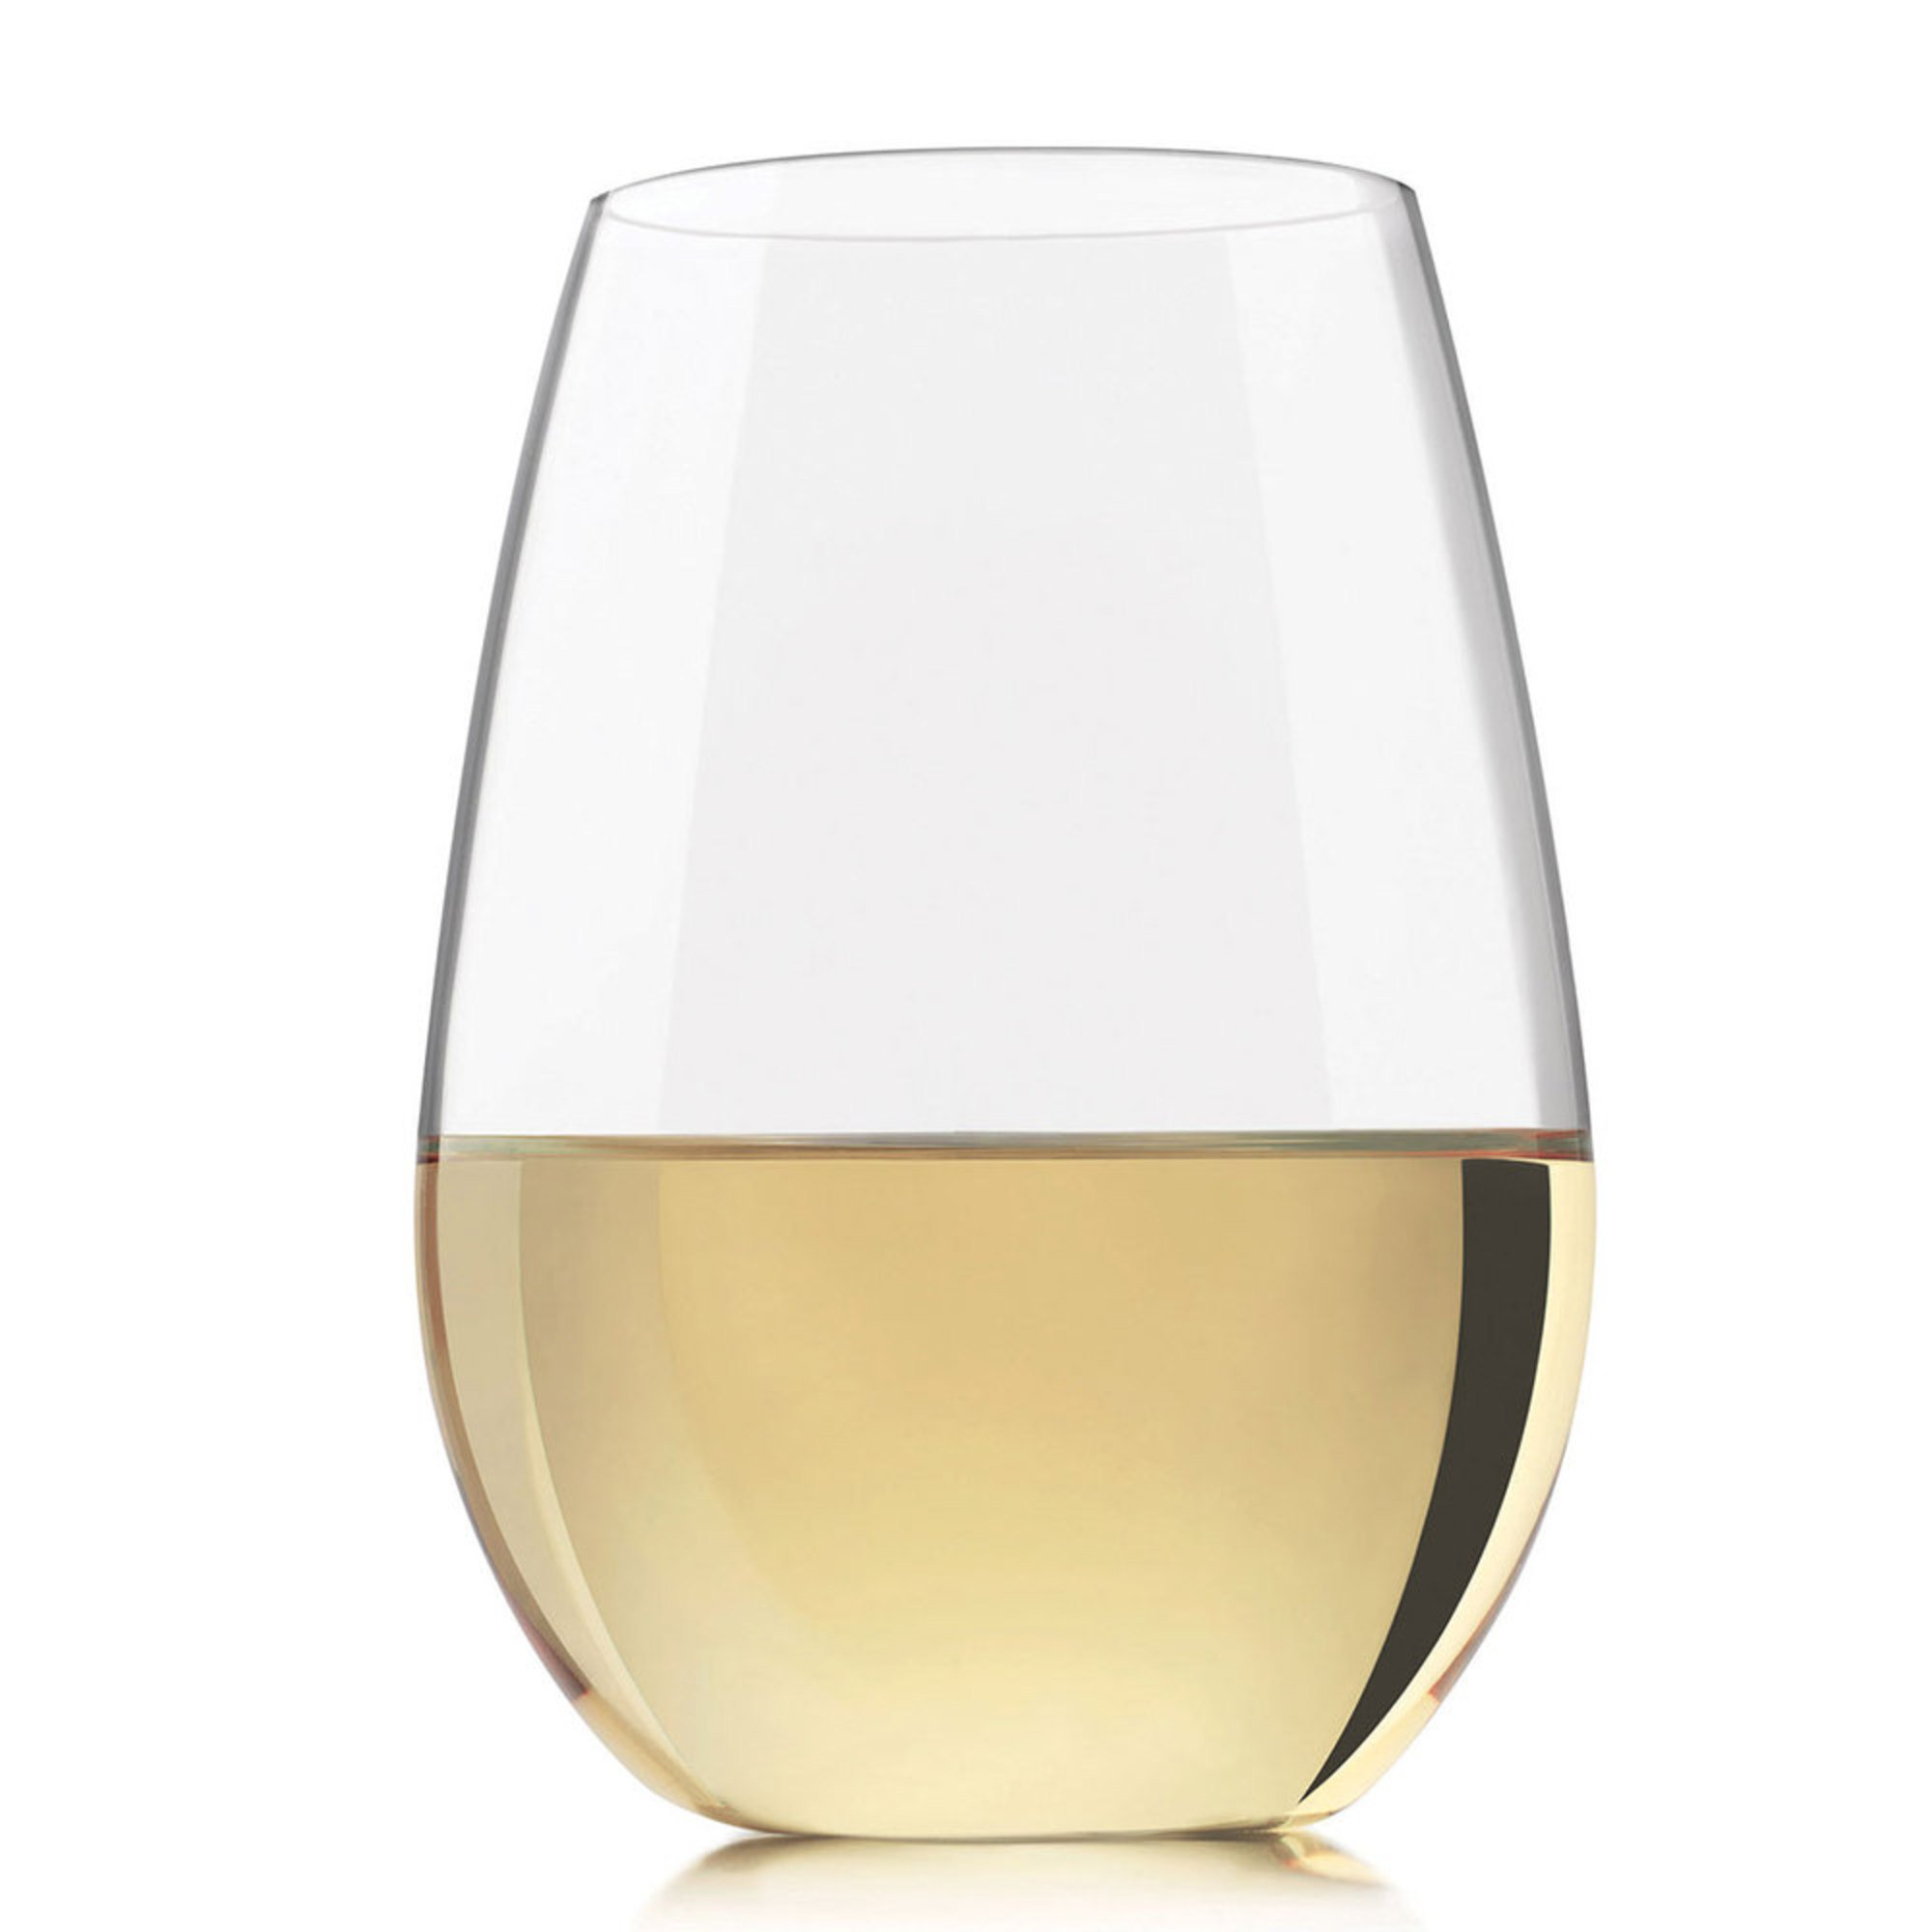 Libbey Kentfield Stemless White Wine Glasses, Set Of 4